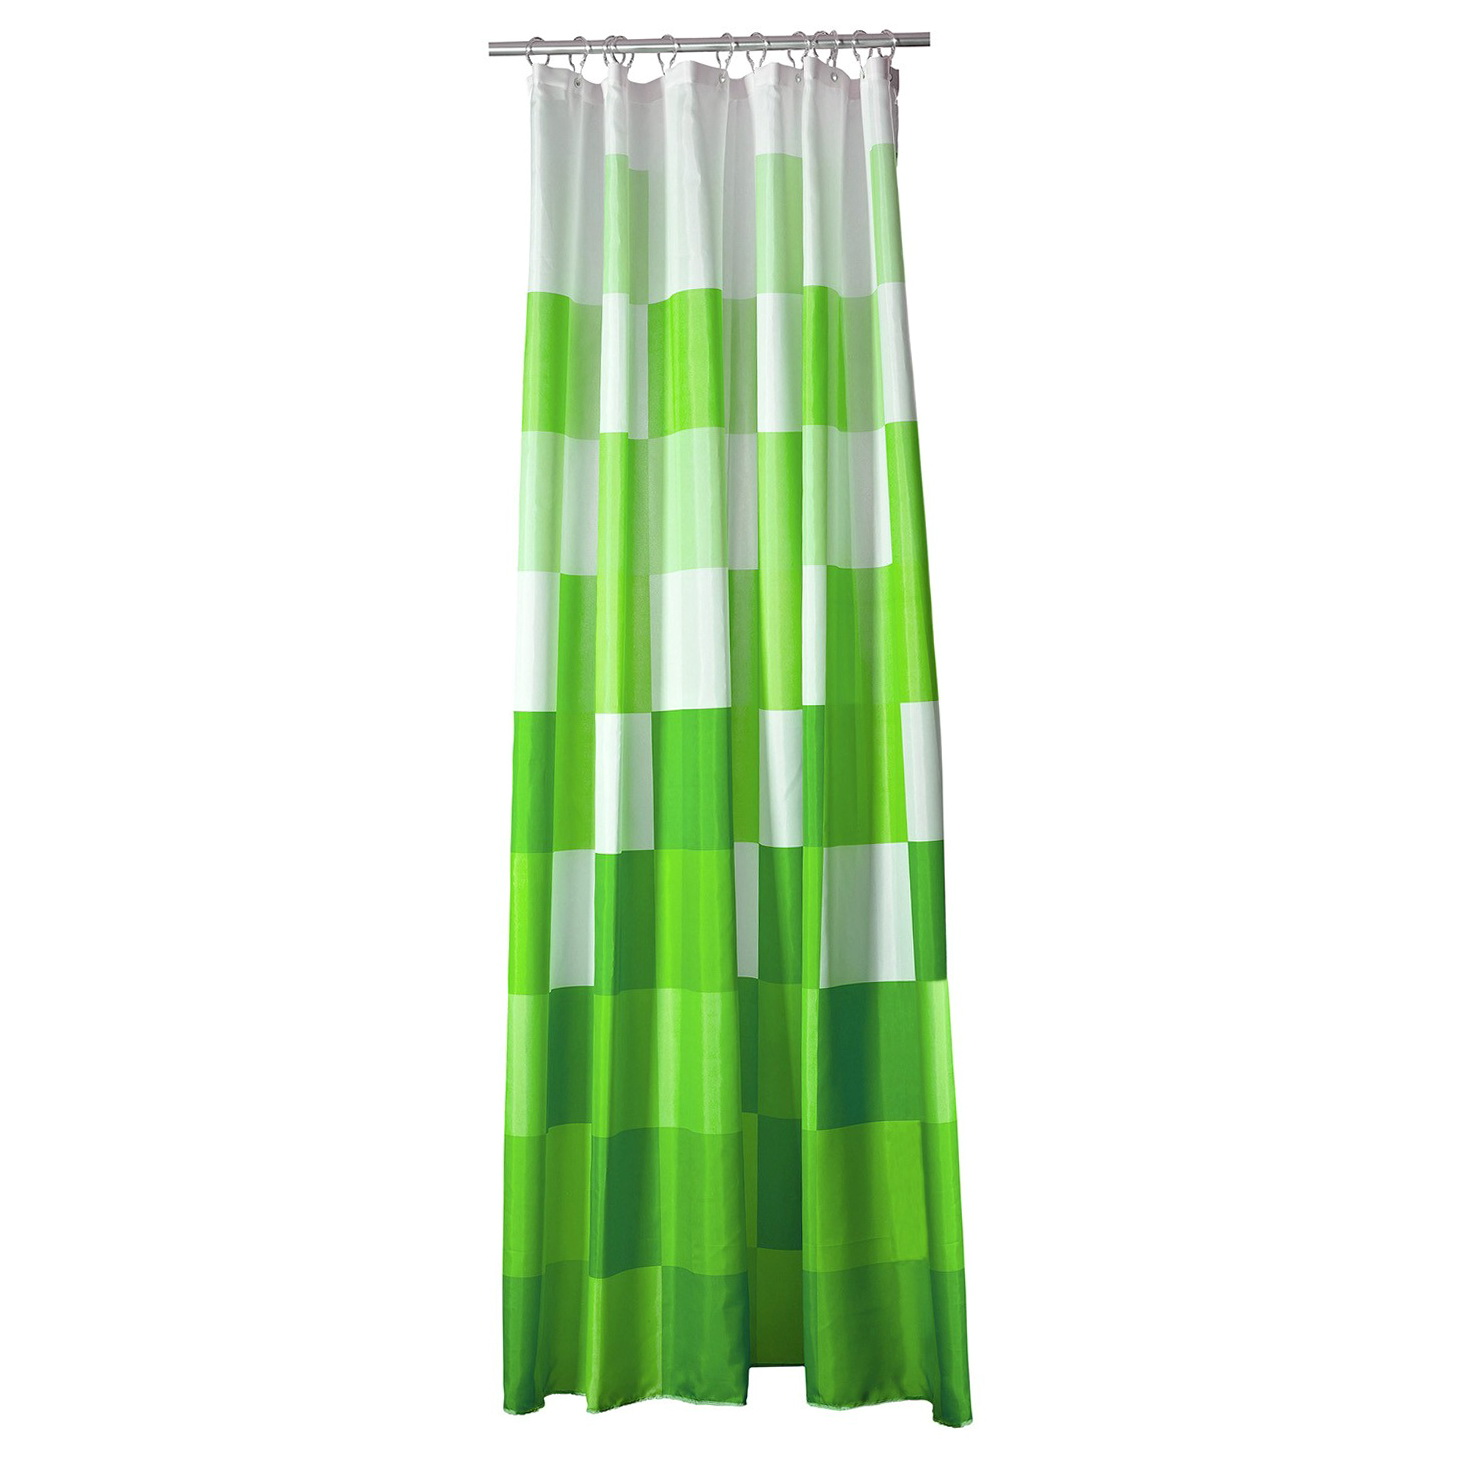 Bright Green Curtains In Ikea Catalogue 2010